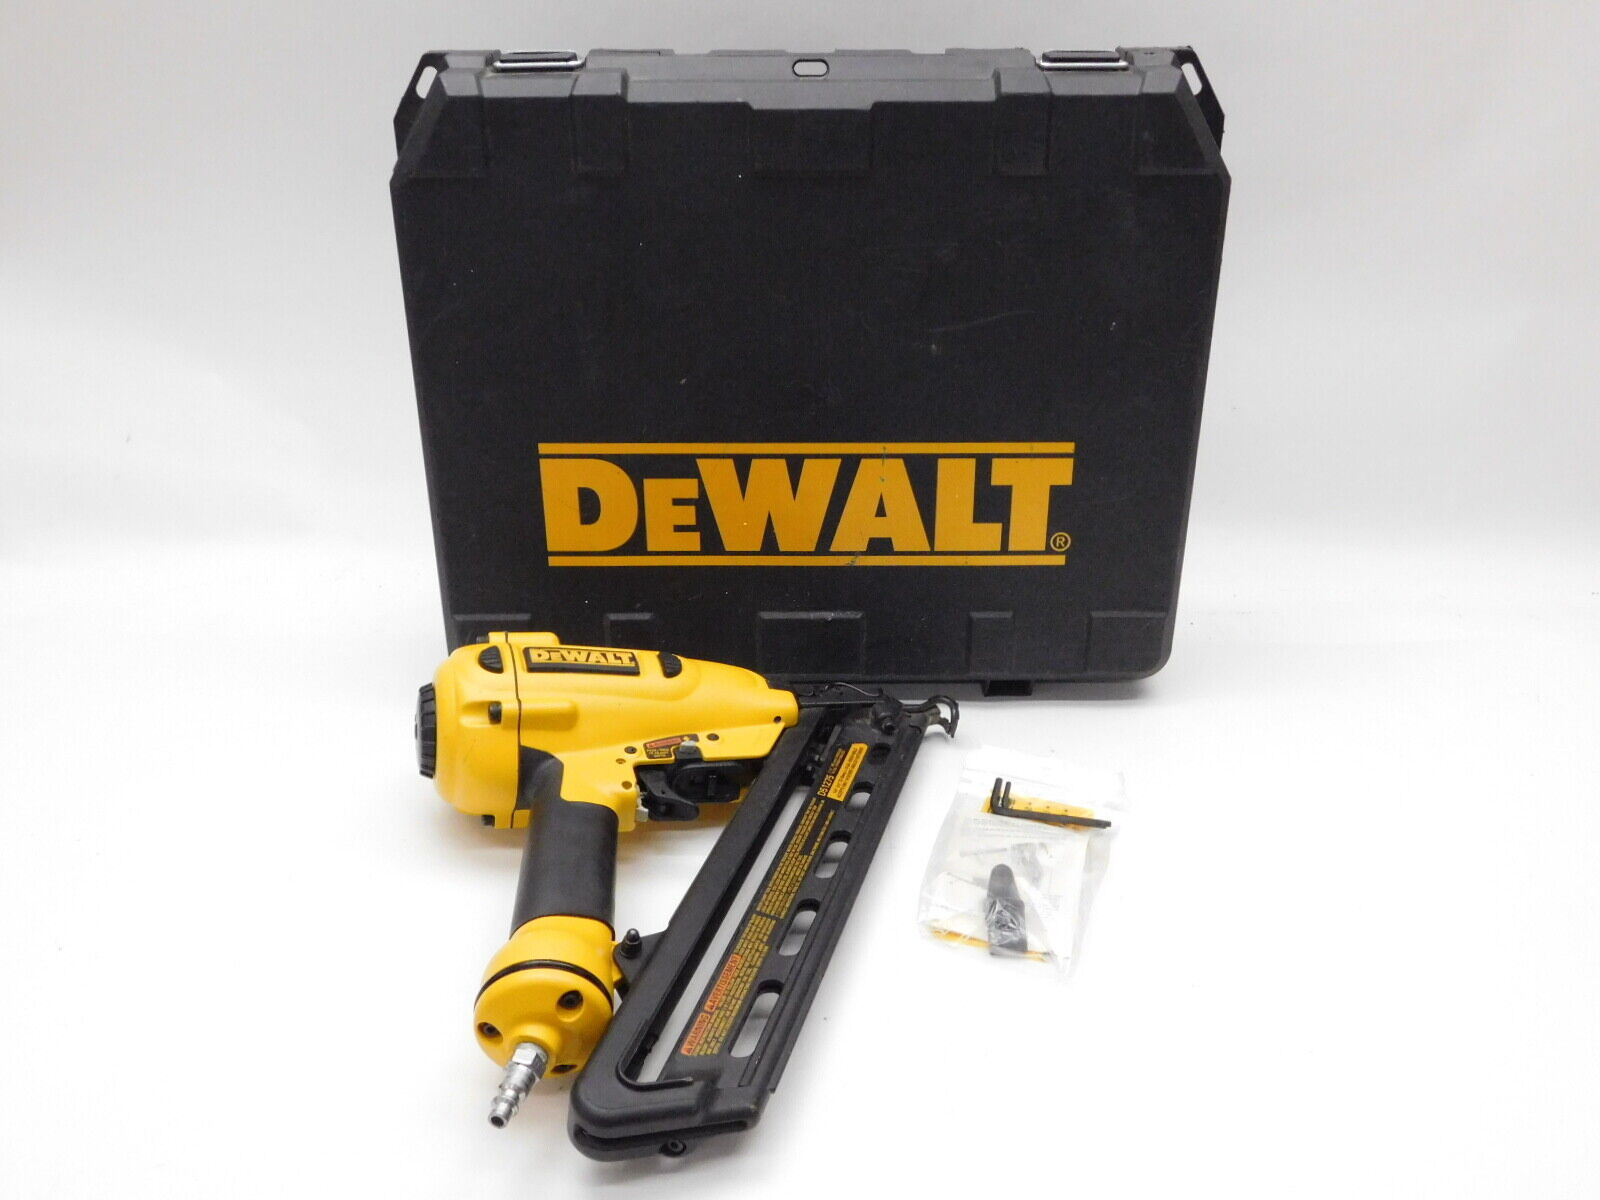 DeWalt D51275 1-1/4-Inch to 2-1/2-Inch 15GA Finish Nailer 120 PSI W/Case. Buy it now for 109.99